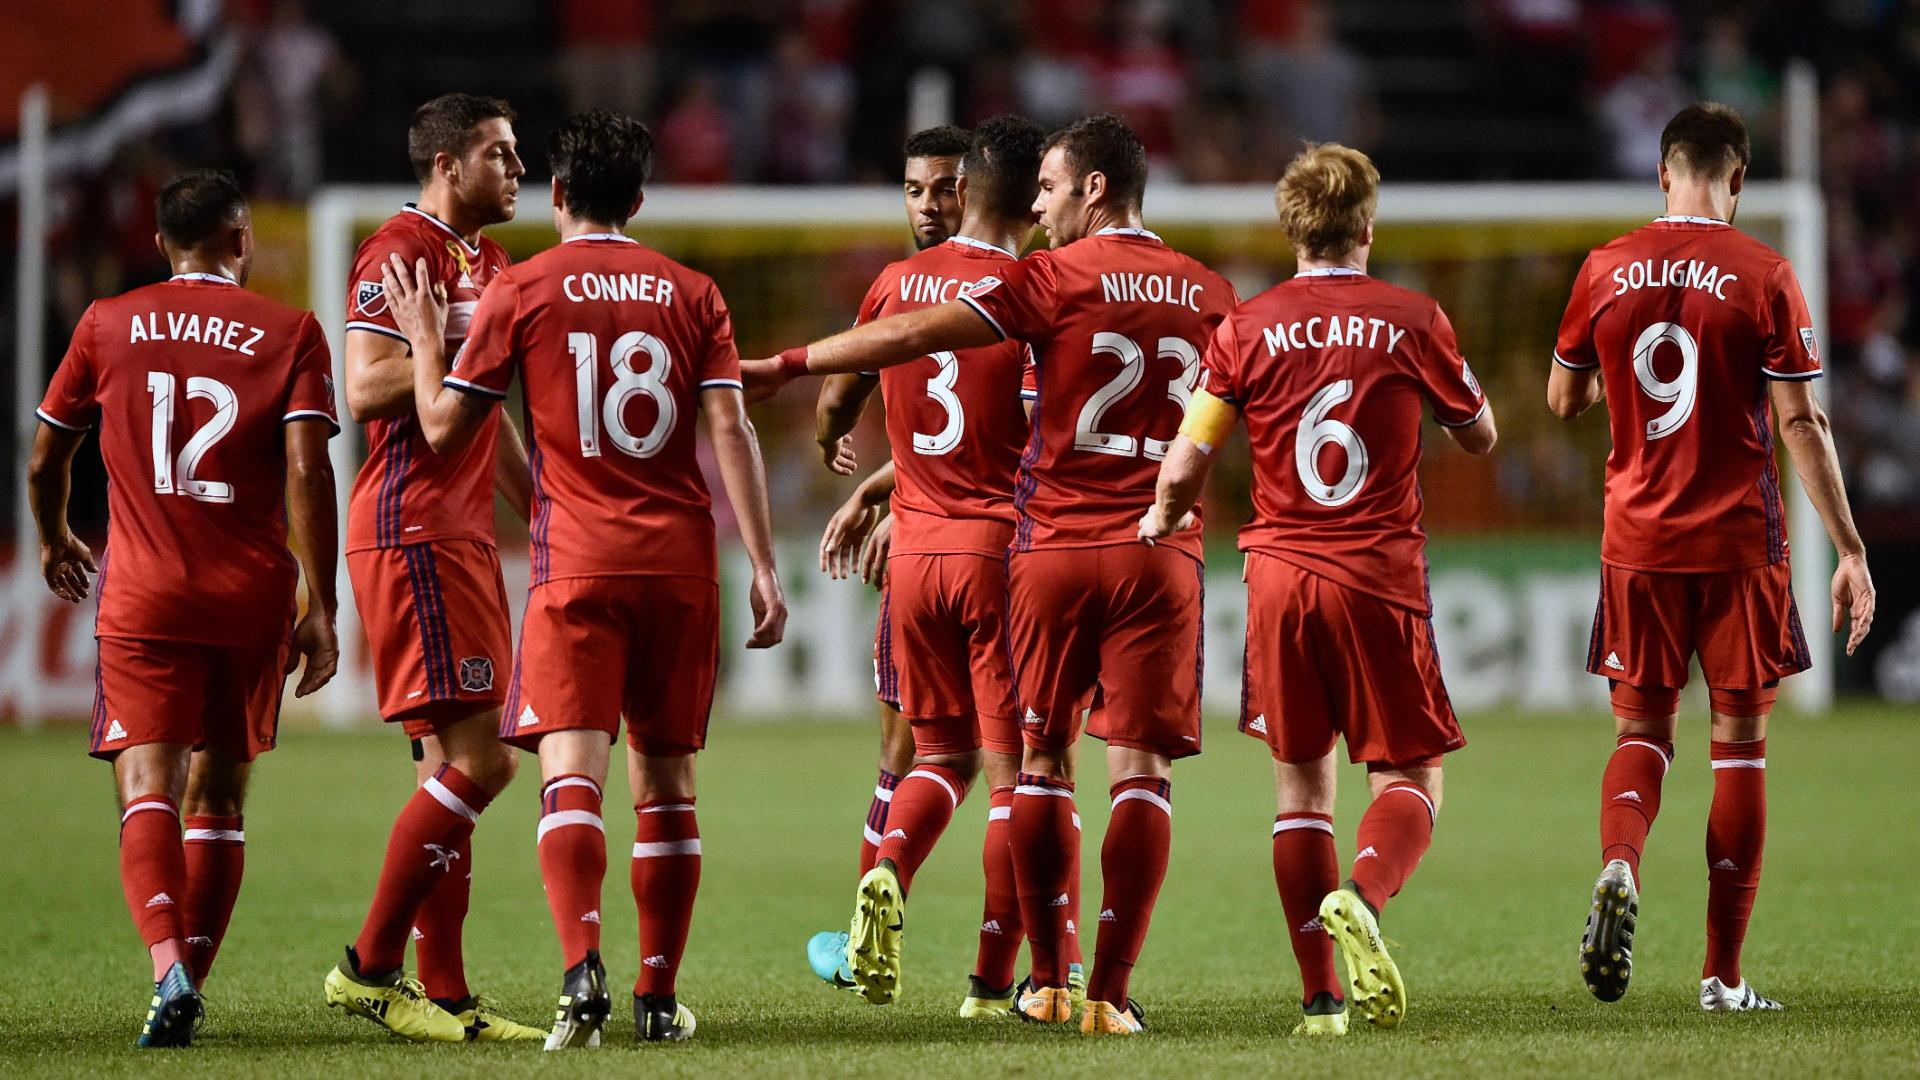 Chicago 3-0 D.C.: Nikolic ties record